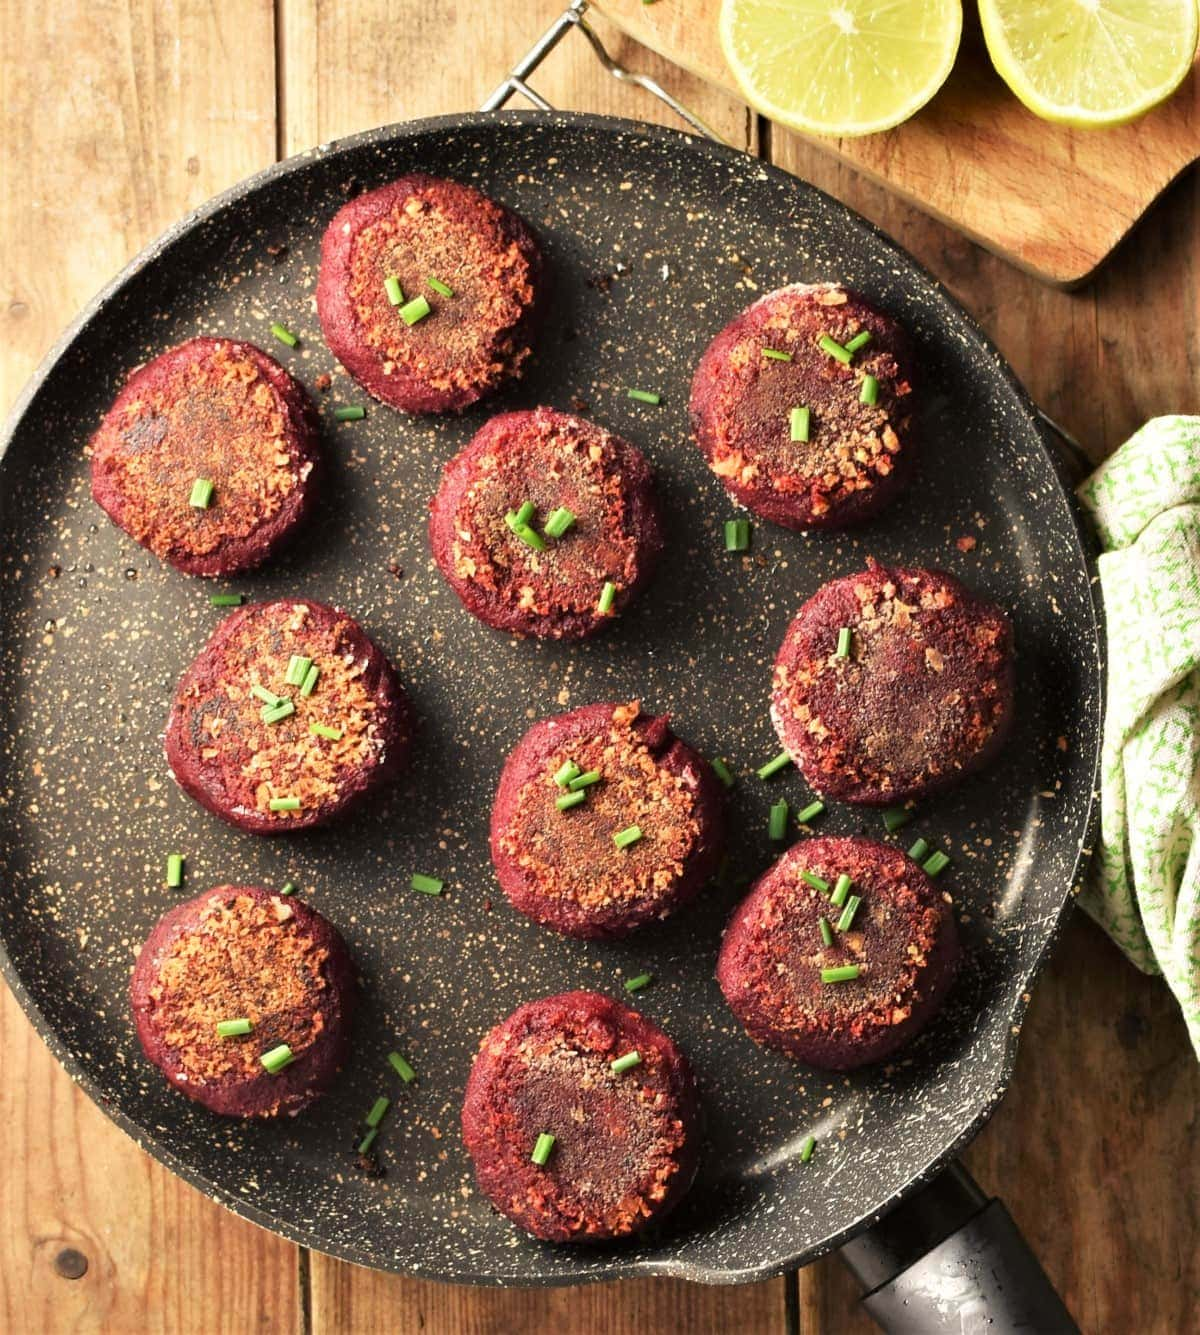 Fried beetroot cakes on top of large pan with lemon in background.